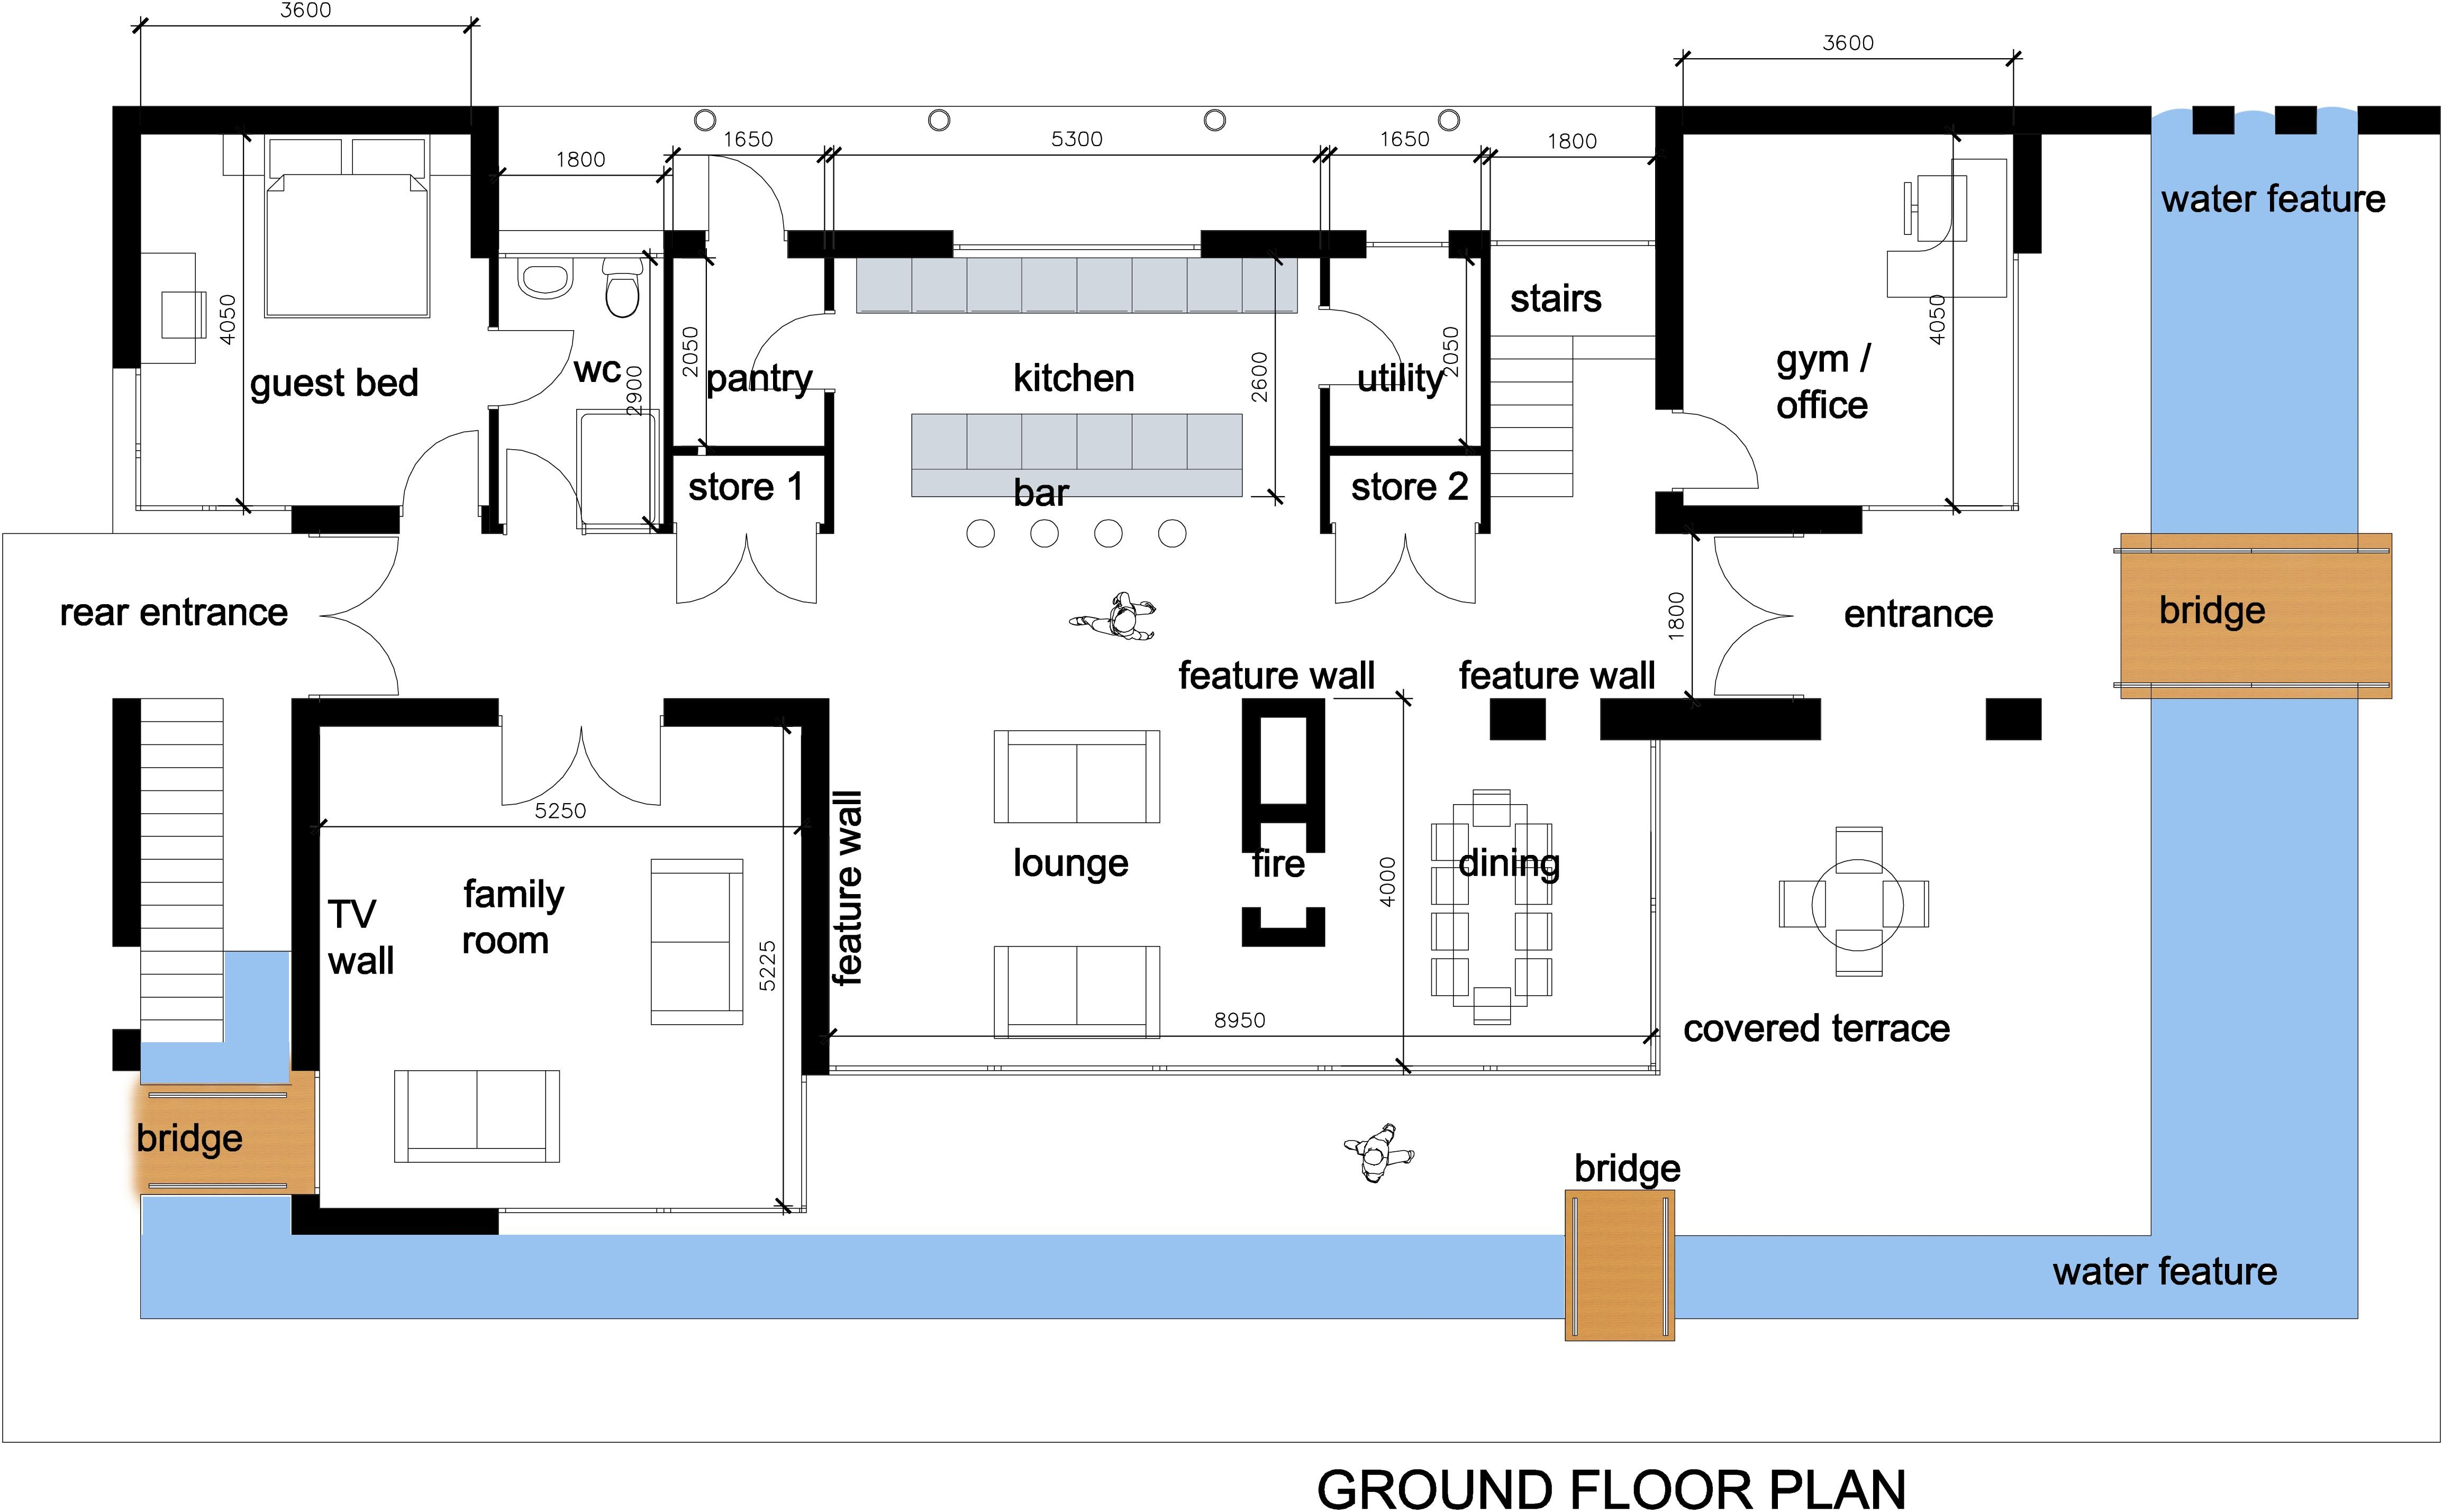 House interior design modern house plan images love this floor plan wish i could find a Simple modern house designs and floor plans